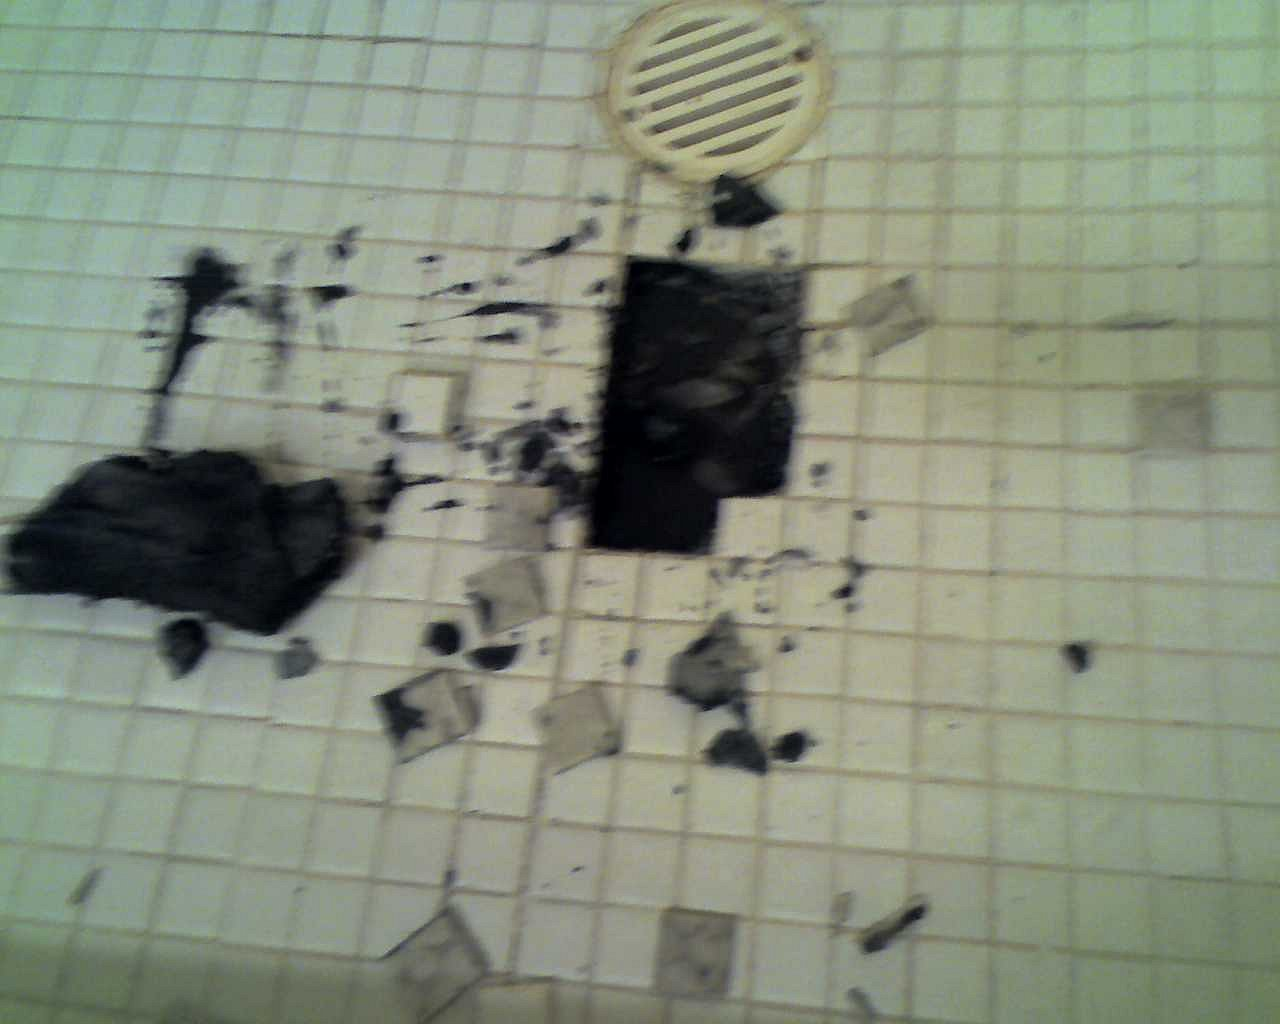 Possible mold under shower tiles 05 22 08 0944 jpg. Possible Mold Under Shower Tiles   Flooring   DIY Chatroom Home